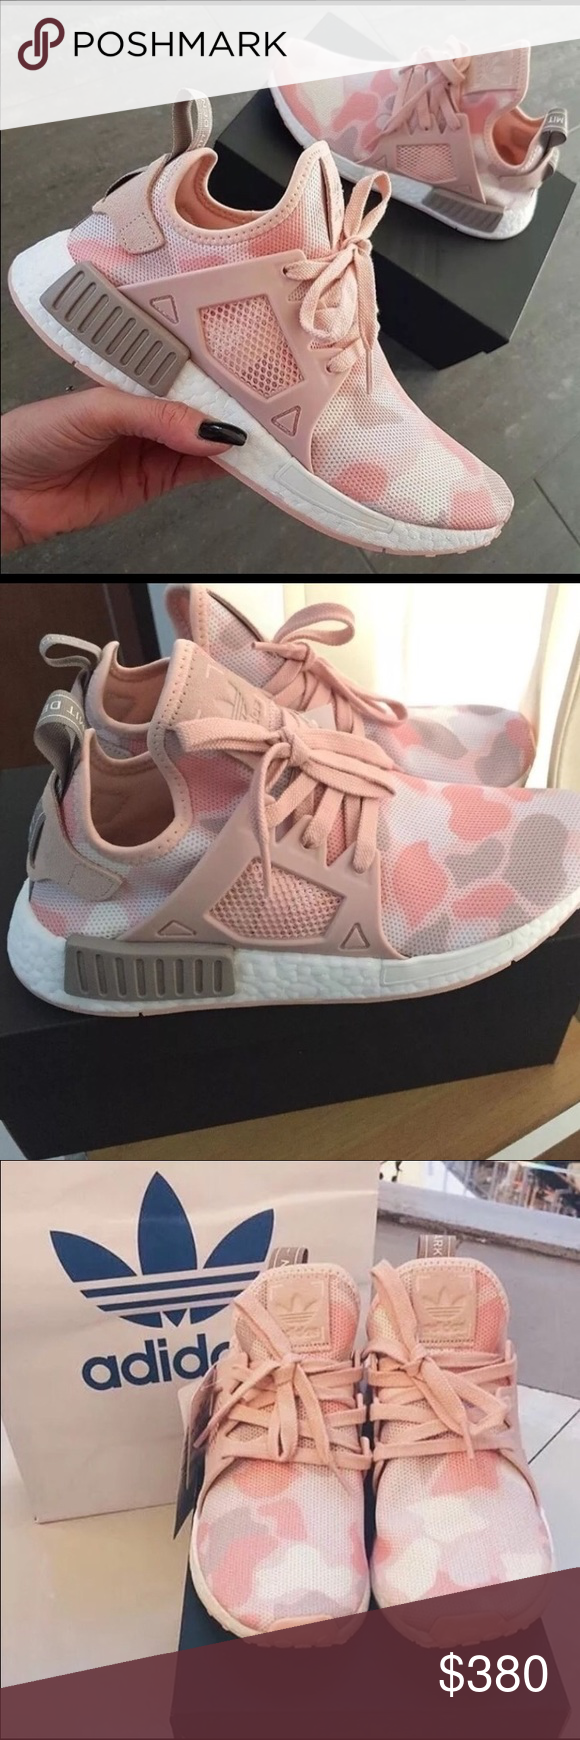 save off fc6dc 656e6 New in box • Adidas NMD XR1 Women Pink Duck Camo New Adidas NMD XR1 Women